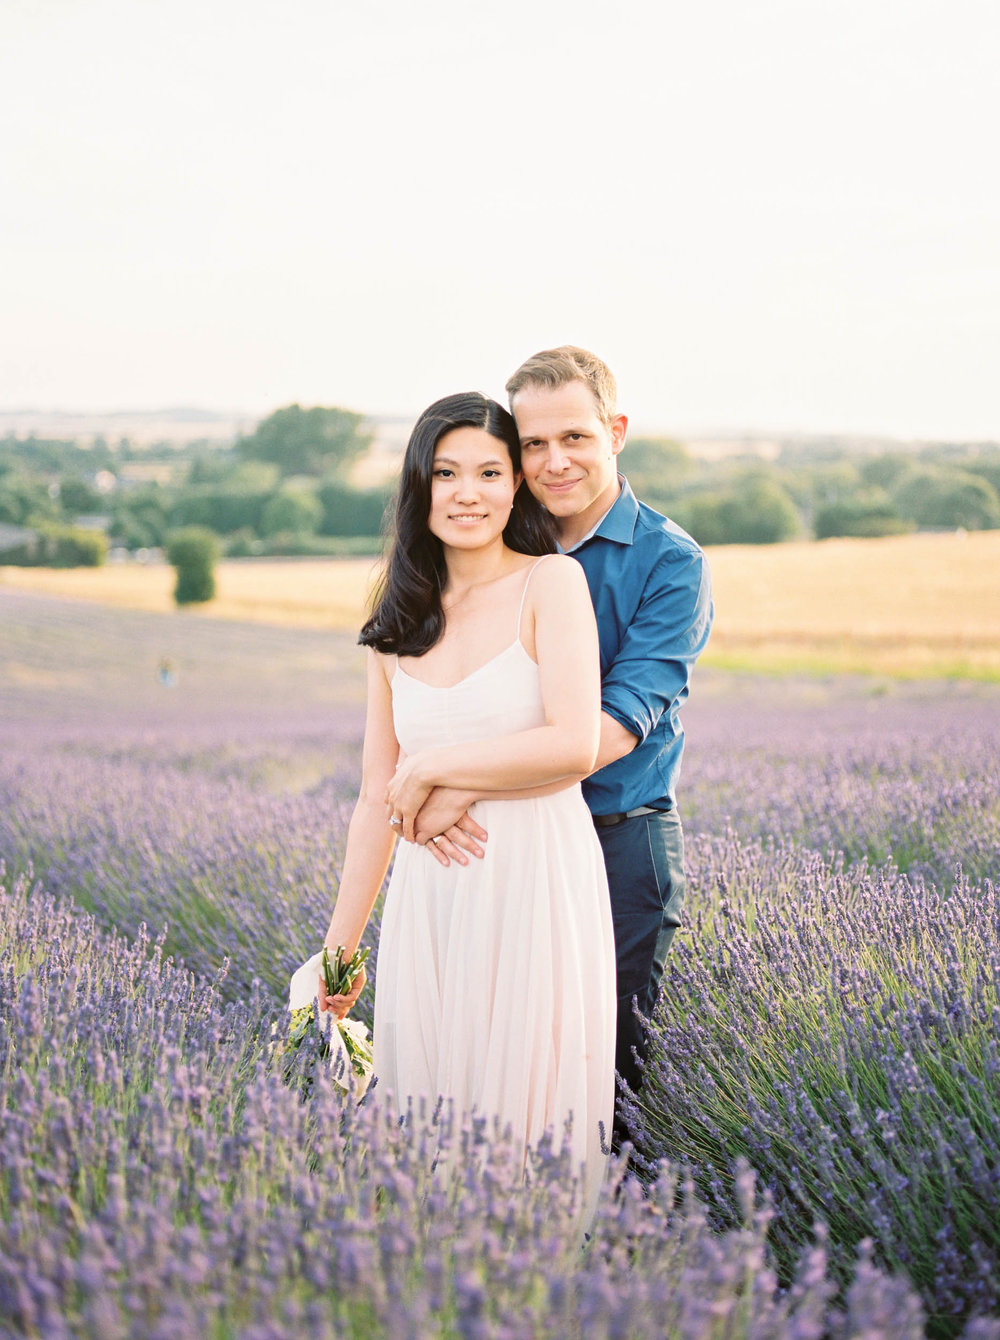 Amy O'Boyle Photography- Destination & UK Fine Art Film Wedding Photographer- Hitchin Lavender Engagement Shoot-22.jpg